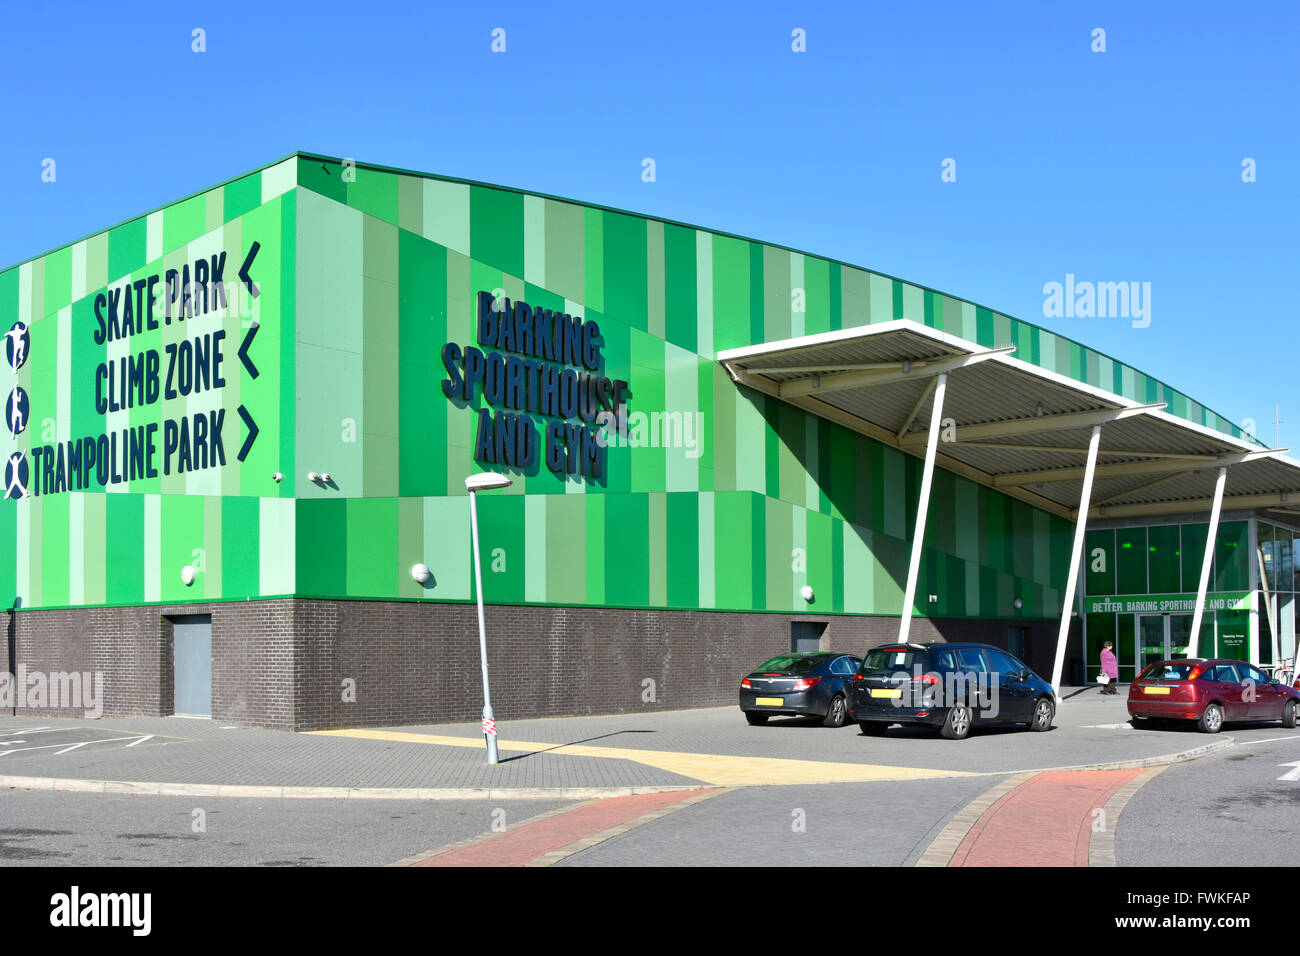 Barking Sporthouse & Gym one of UK largest sports hall & many other facilities in large open space parkland - Stock Image